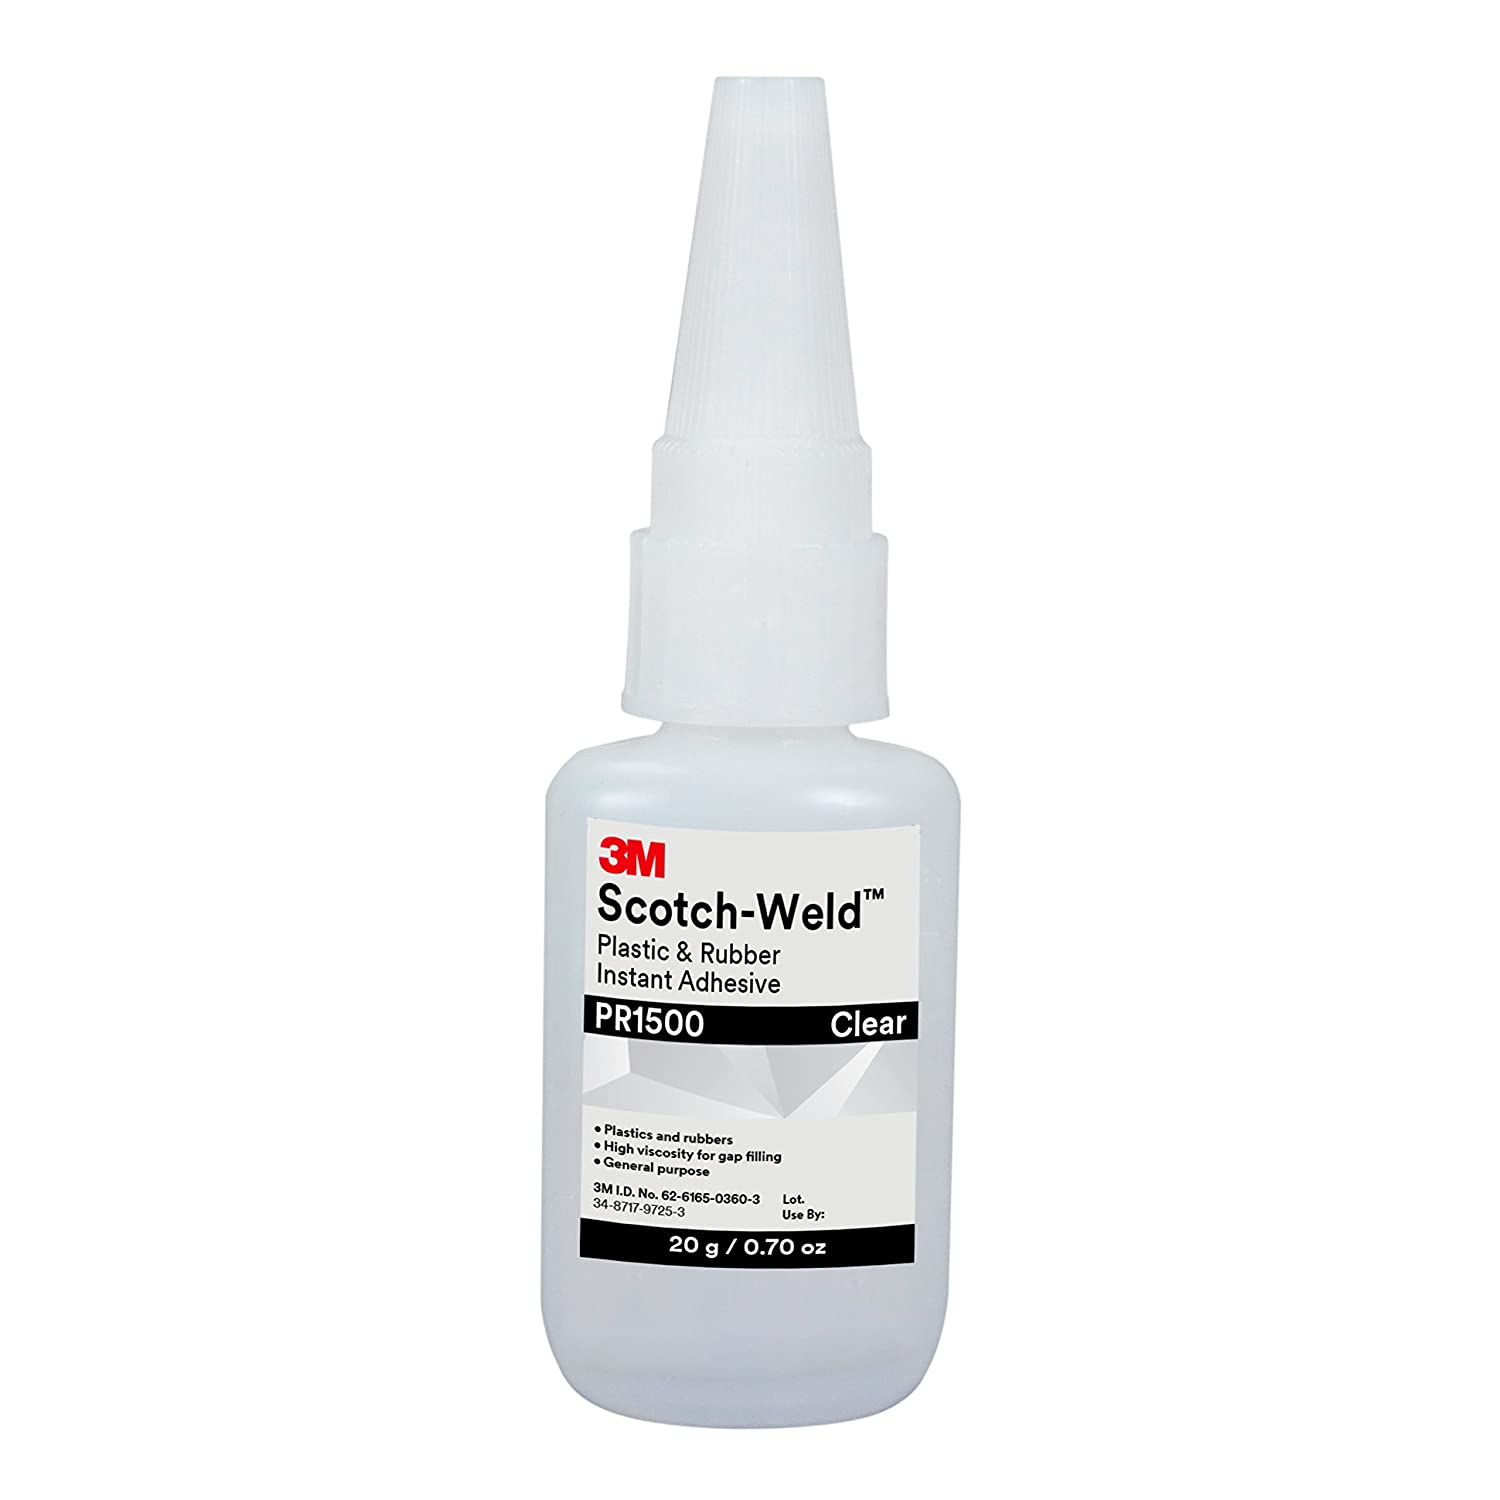 3M Scotch-Weld Plastic & Rubber Instant Adhesive PR1500, Clear, 20 Gram Bottle